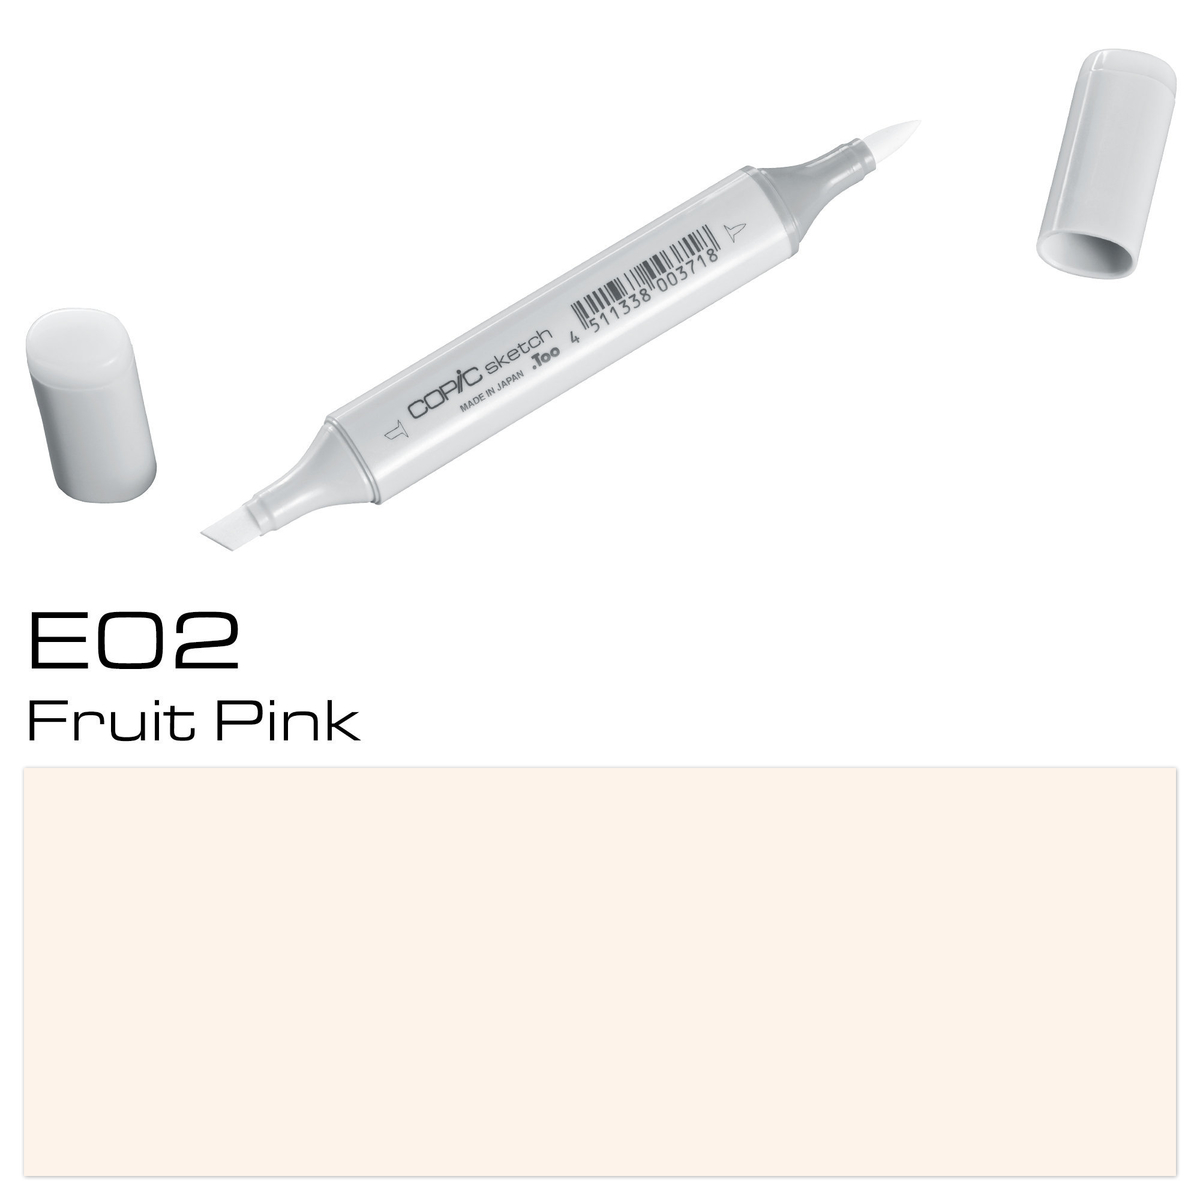 Copic Sketch E 02 fruit pink